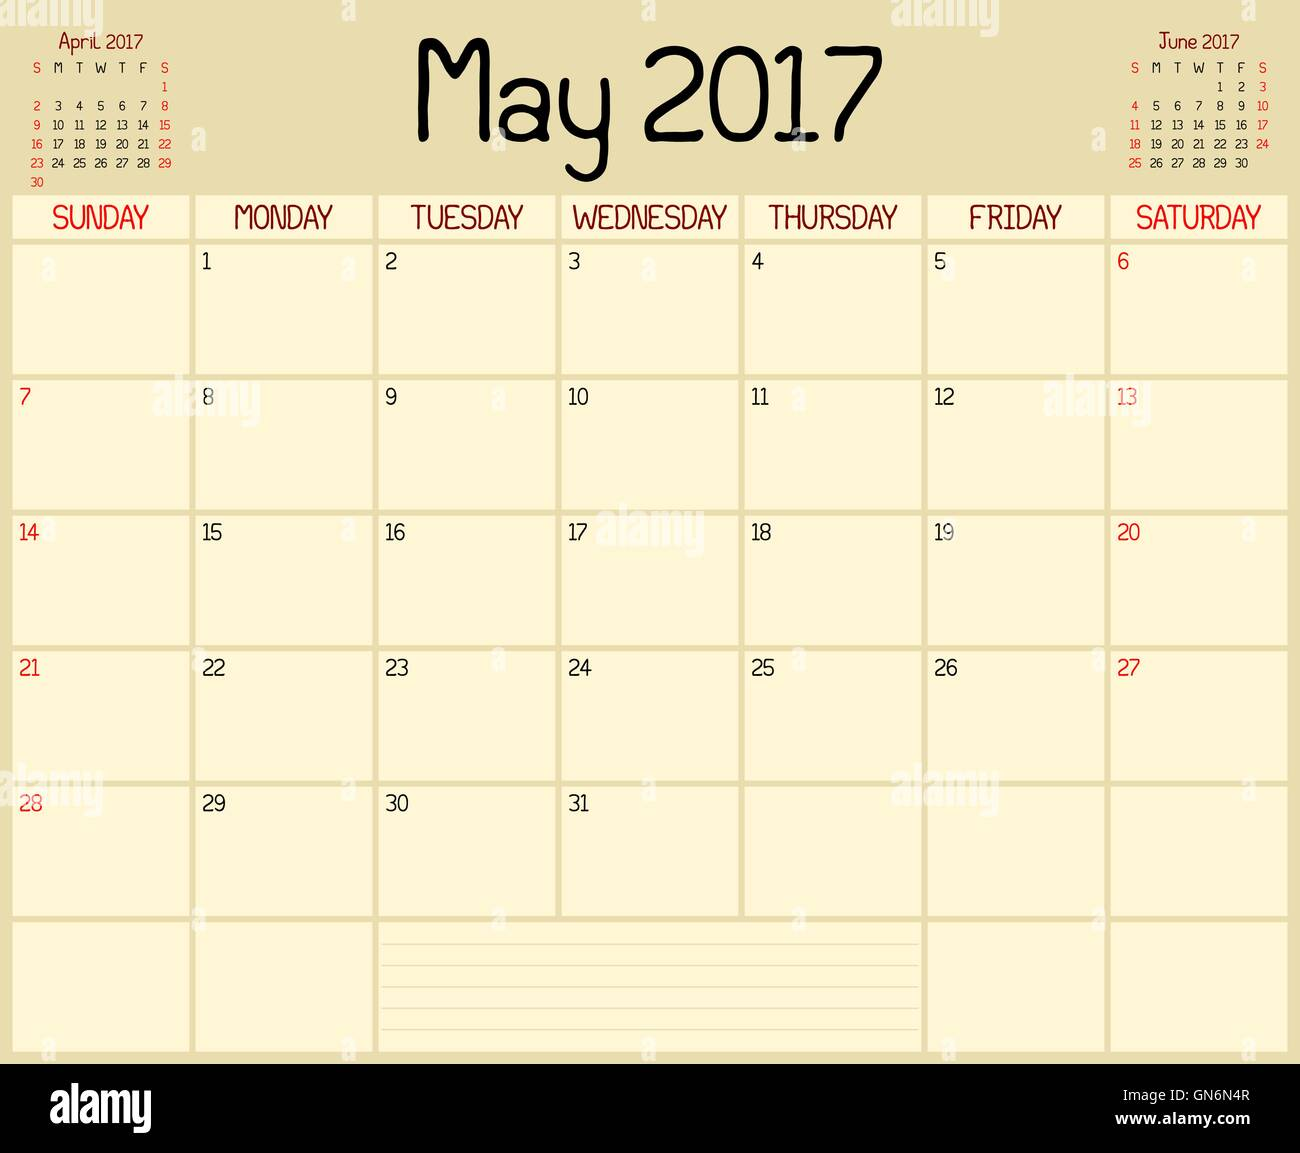 Calendar Planner May : A monthly planner calendar for may custom